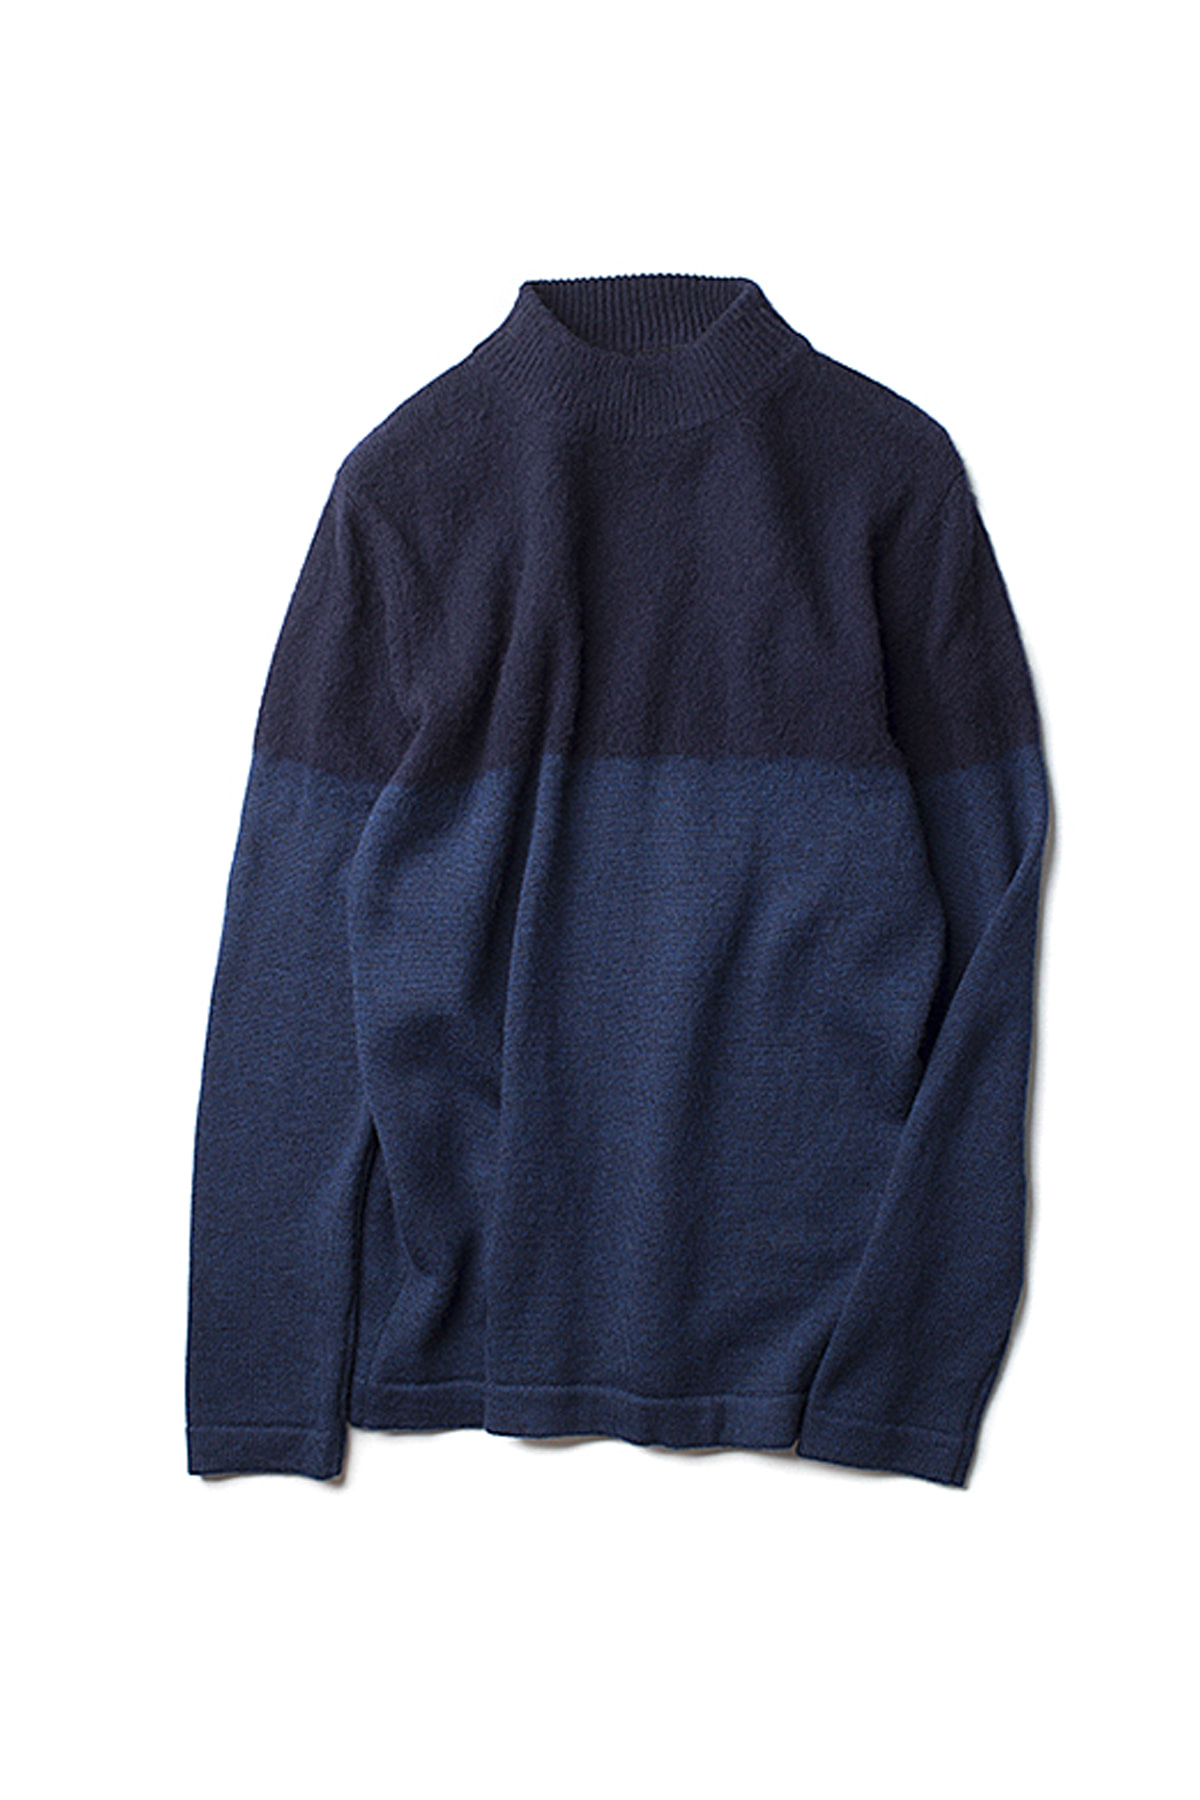 Still By Hand : 2Tone Pullover Knit (Navy)